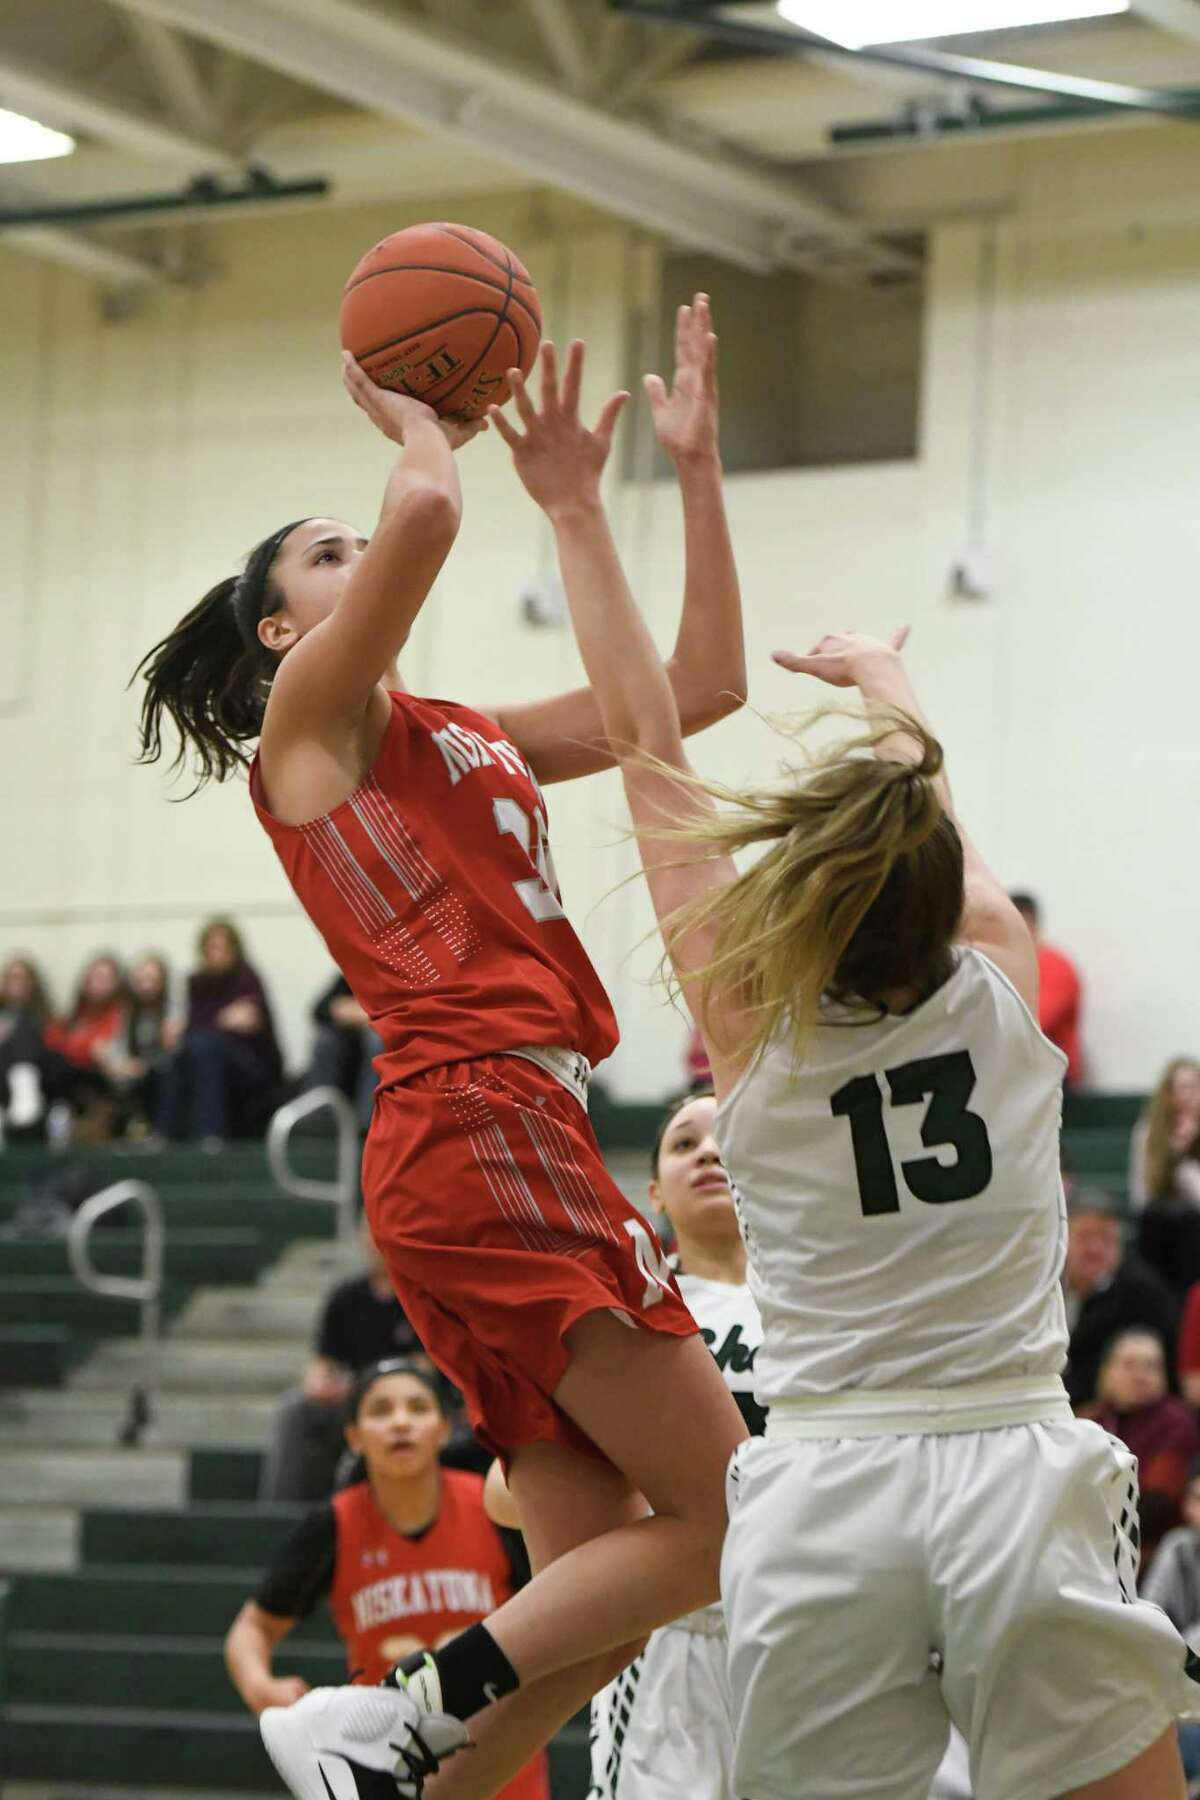 Shen's Jess Wagoner attempts to block a shot by Niskayuna's Olivia Olsen during their sectional quarterfinal on Thursday, Feb. 21, 2019, in Clifton Park, N.Y. (Jenn March, Special to the Times Union)